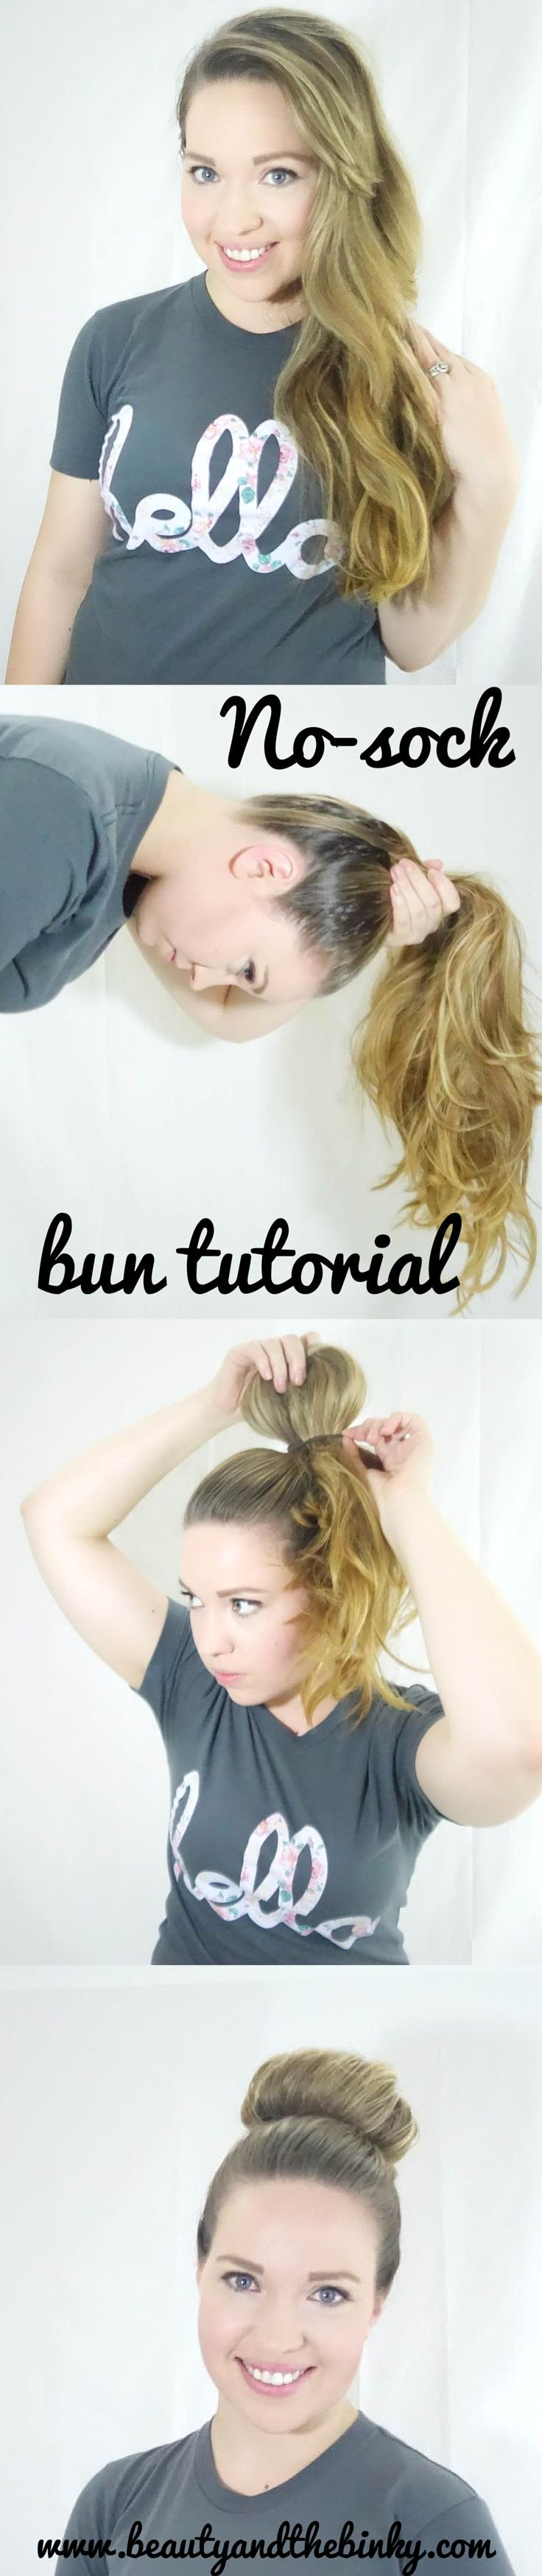 209 best creative hair & makeup images on pinterest | hairstyles